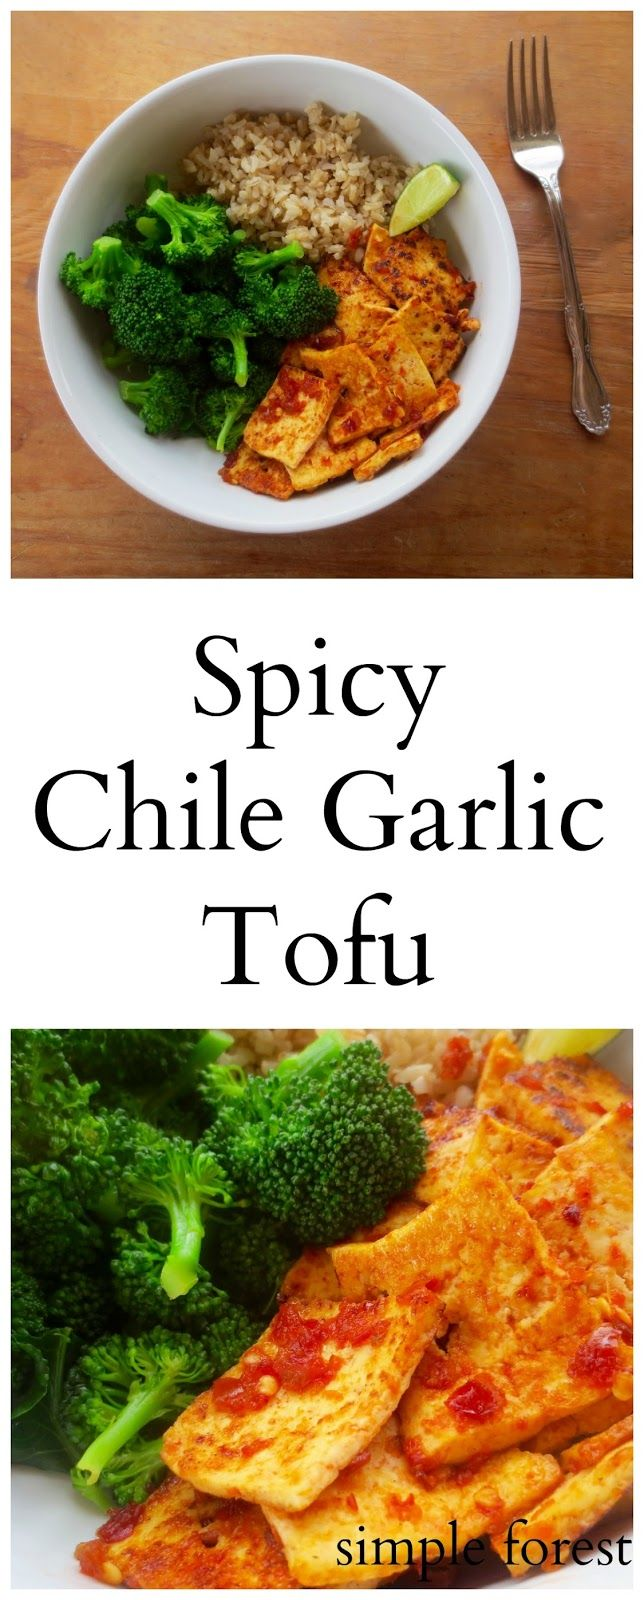 Simple Forest: Spicy Chile Garlic Tofu https://macthelm.blogspot.com/ Super quick to make, this Spicy Chile Garlic Tofu only requires 5 ingredients!